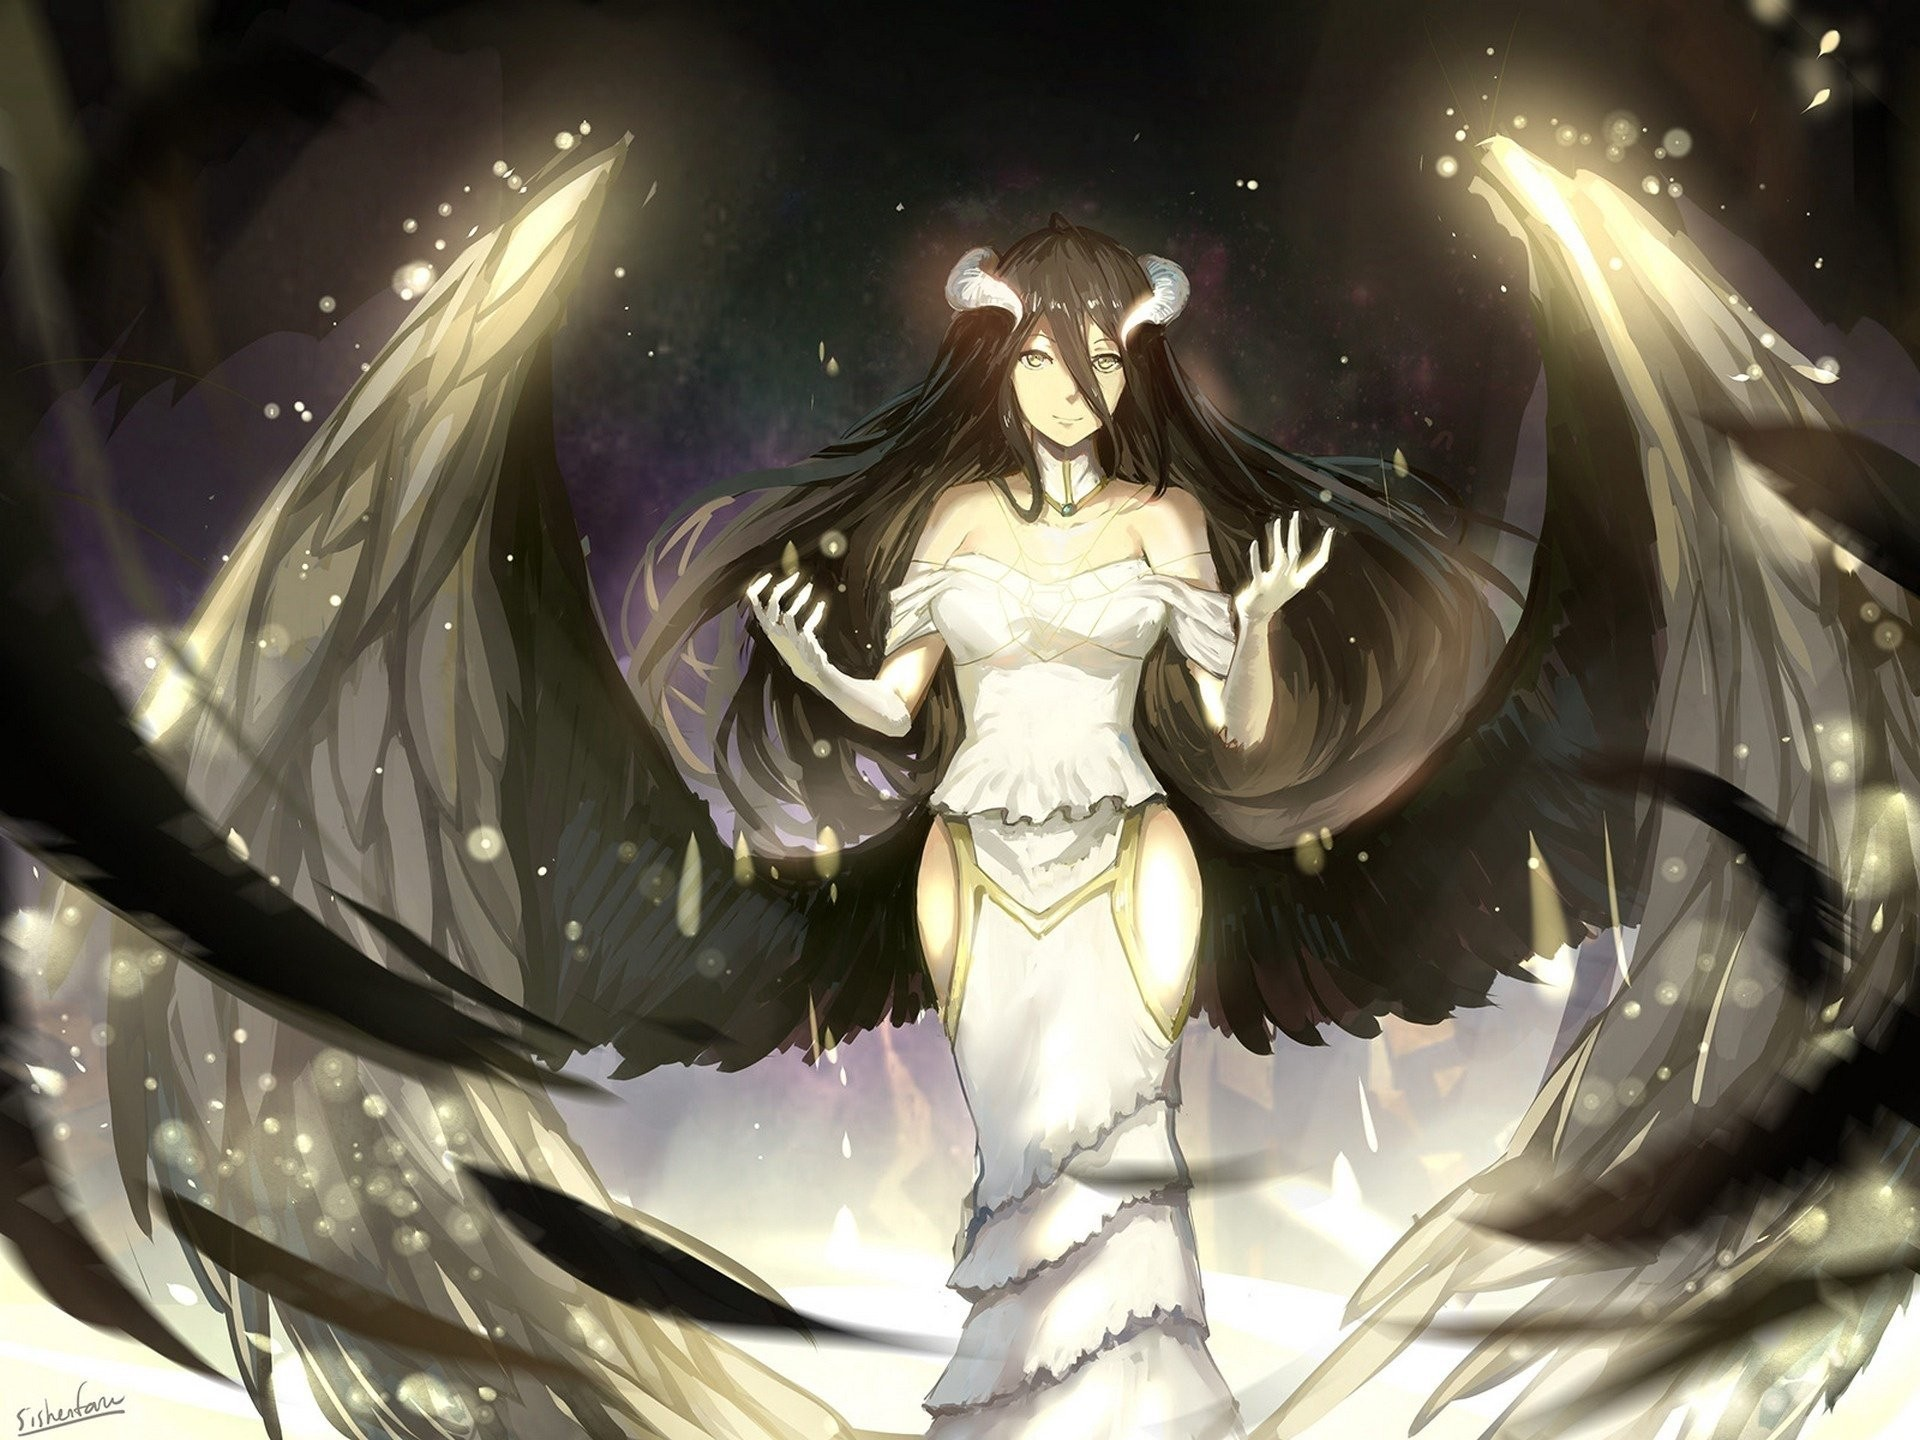 Overlord anime wallpaper download free stunning - Anime hd wallpaper 1920x1080 ...